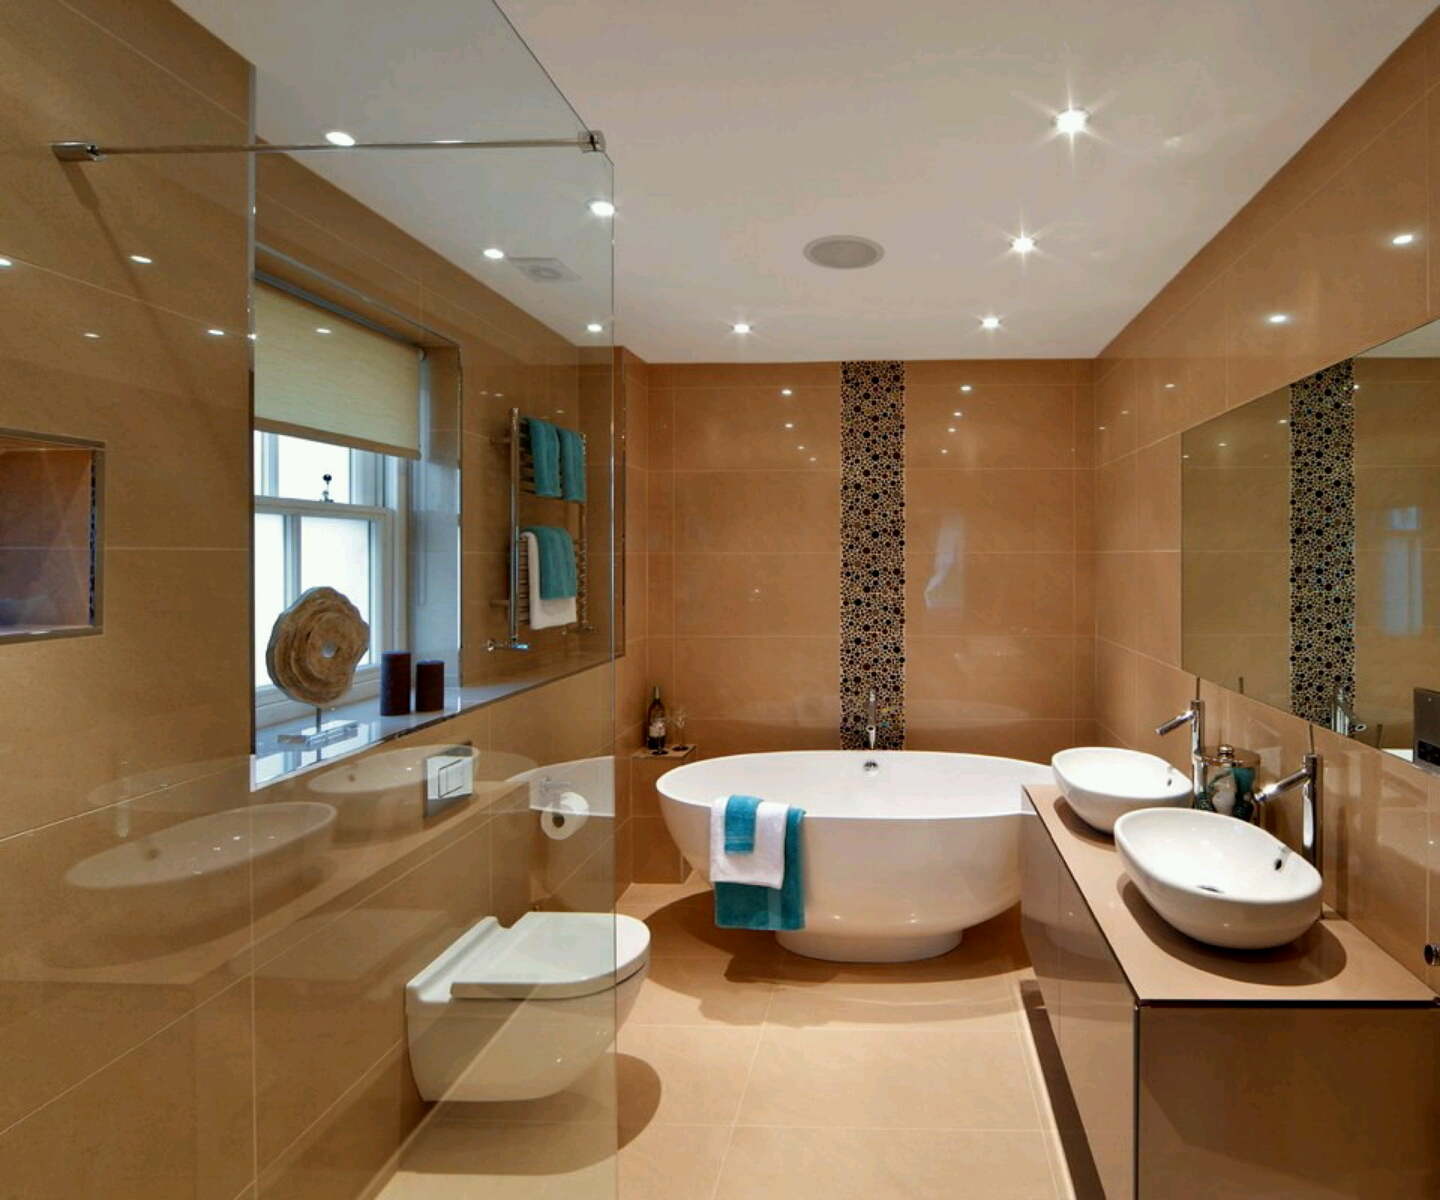 25 small but luxury bathroom design ideas for Contemporary bathroom design ideas